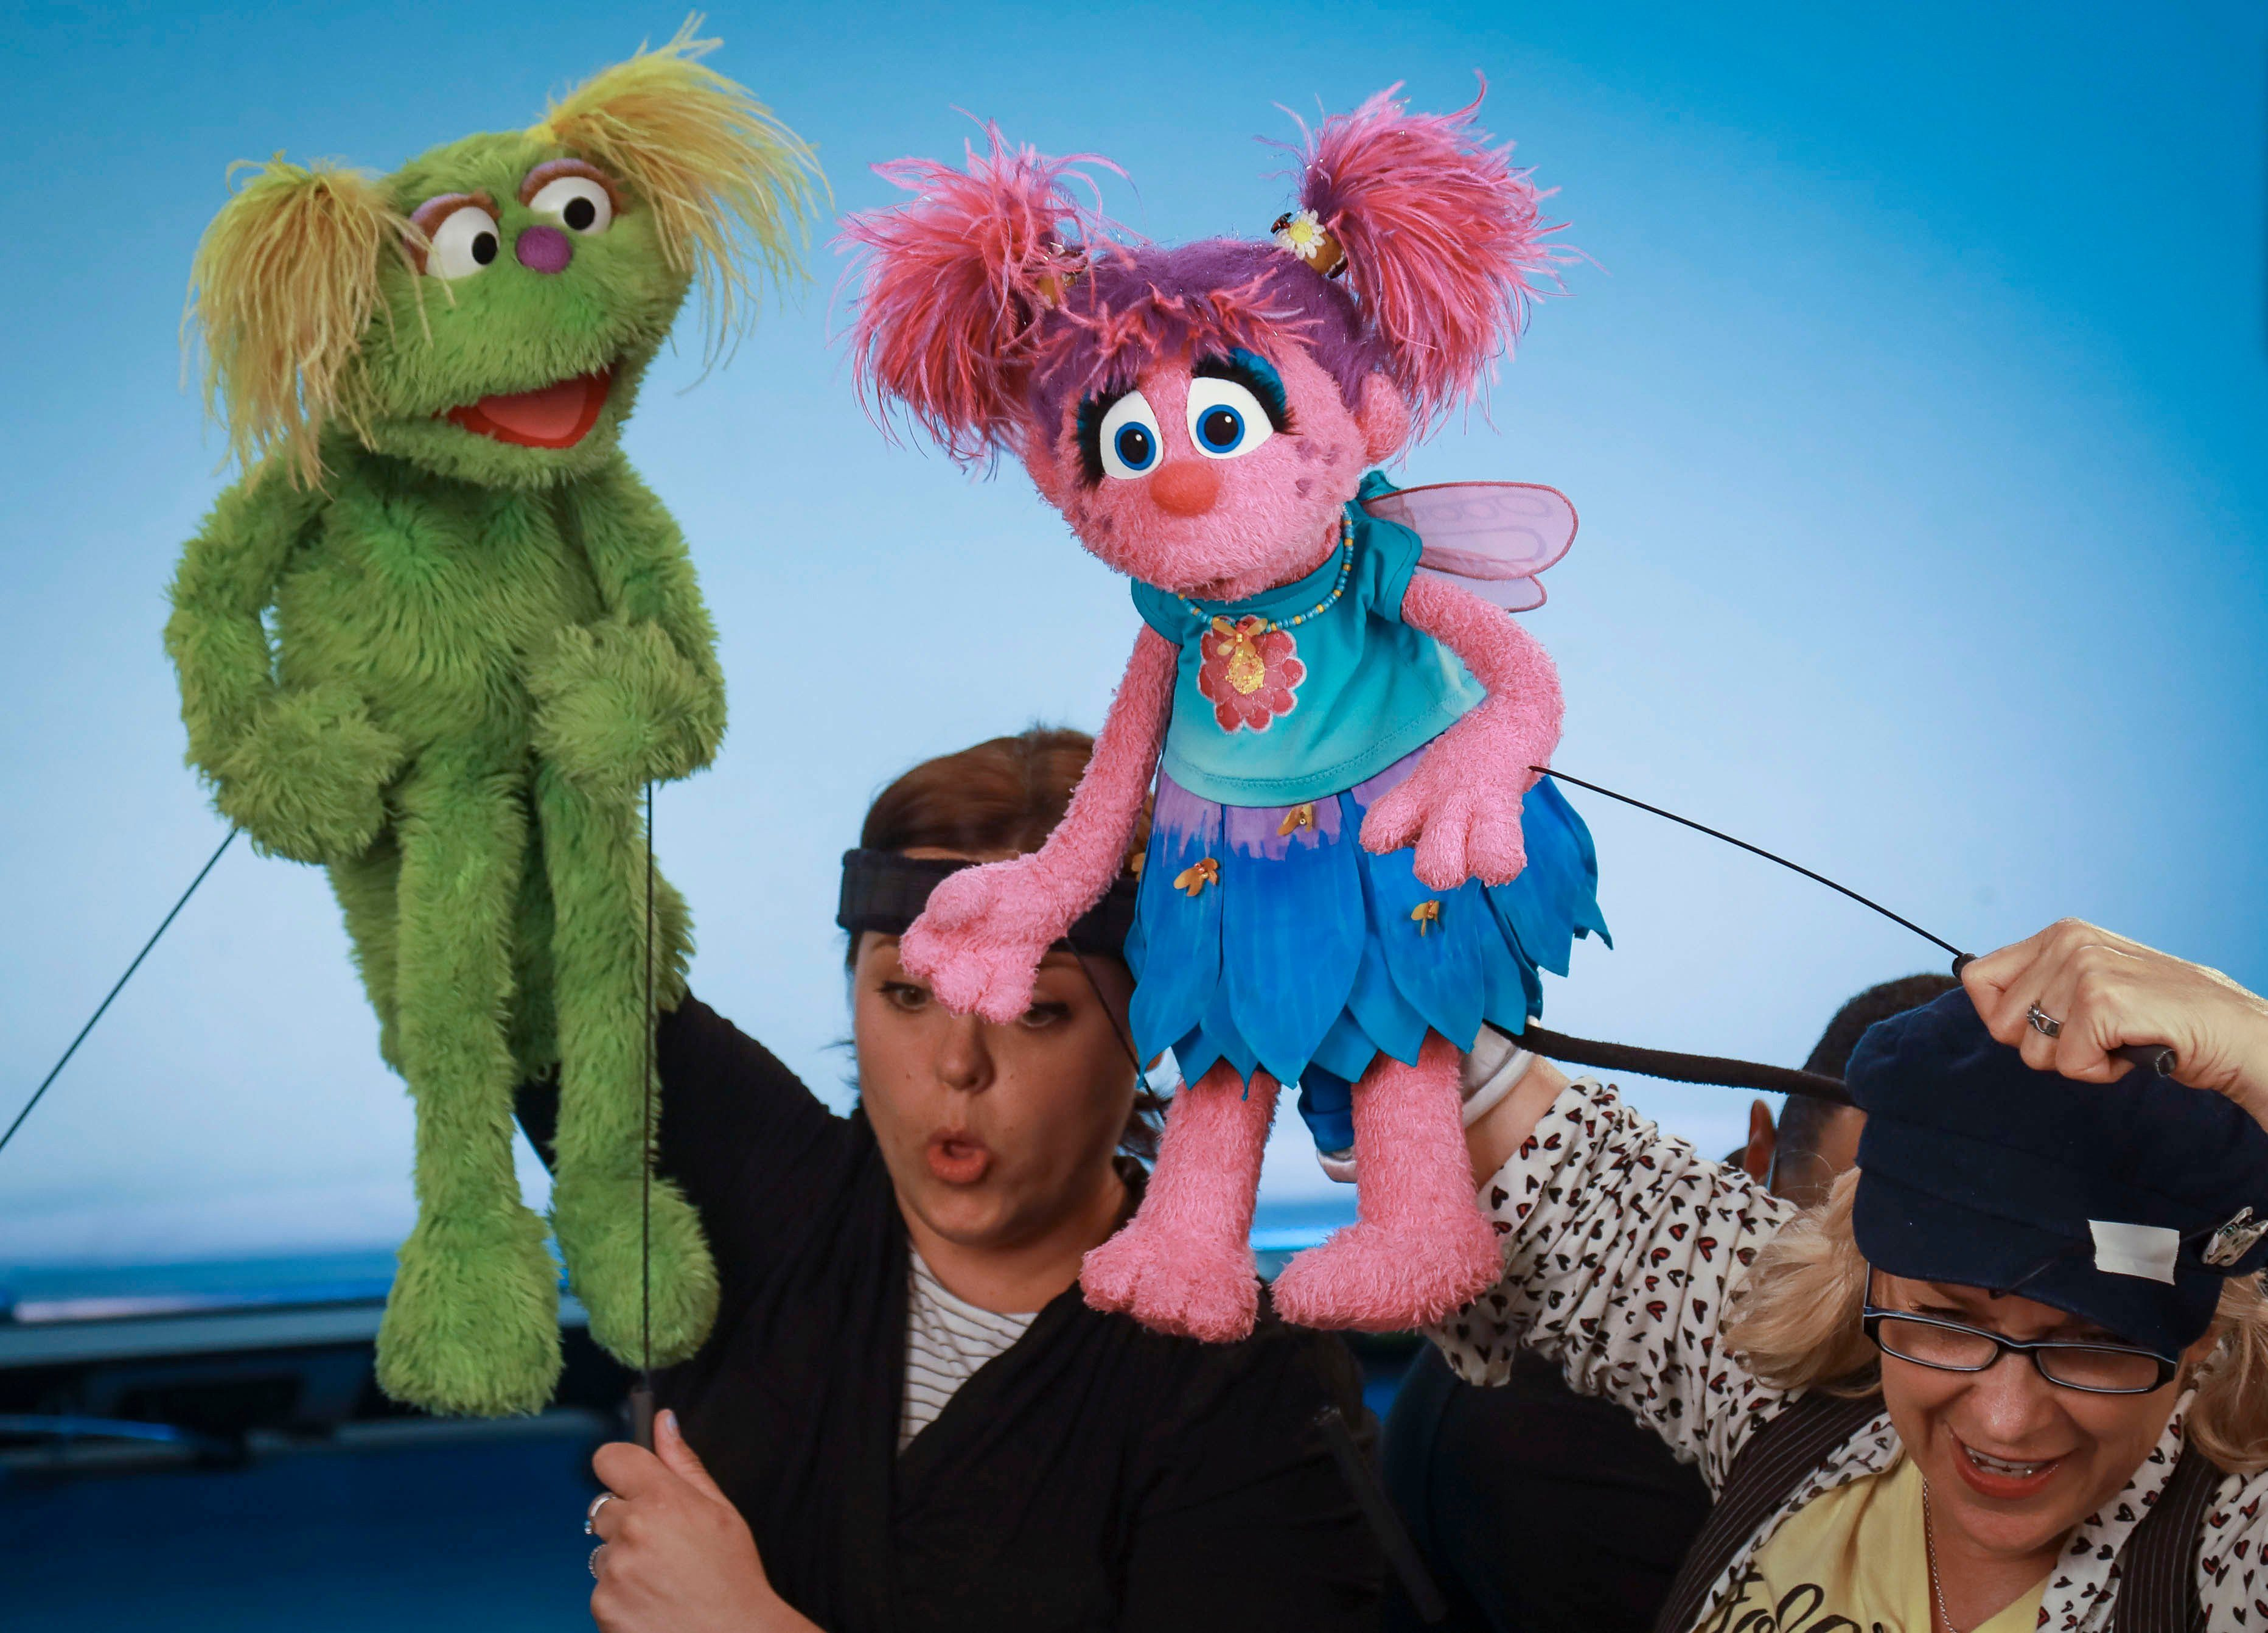 """Mandatory Credit: Photo by Bebeto Matthews/AP/Shutterstock (10440203b) This photo shows puppeteers Haley Jenkins, left, and Leslie Carrara-Rudolph performing with their """"Sesame Street"""" muppets Karli and Abby Cadabby, respectively, for segments about parental addiction in New York. Sesame Workshop is addressing the issue of addiction. Data shows 5.7 million children under 11 live in households with a parent with substance use disorder TV-Sesame Street-Addiction, New York, USA - 06 Aug 2019"""